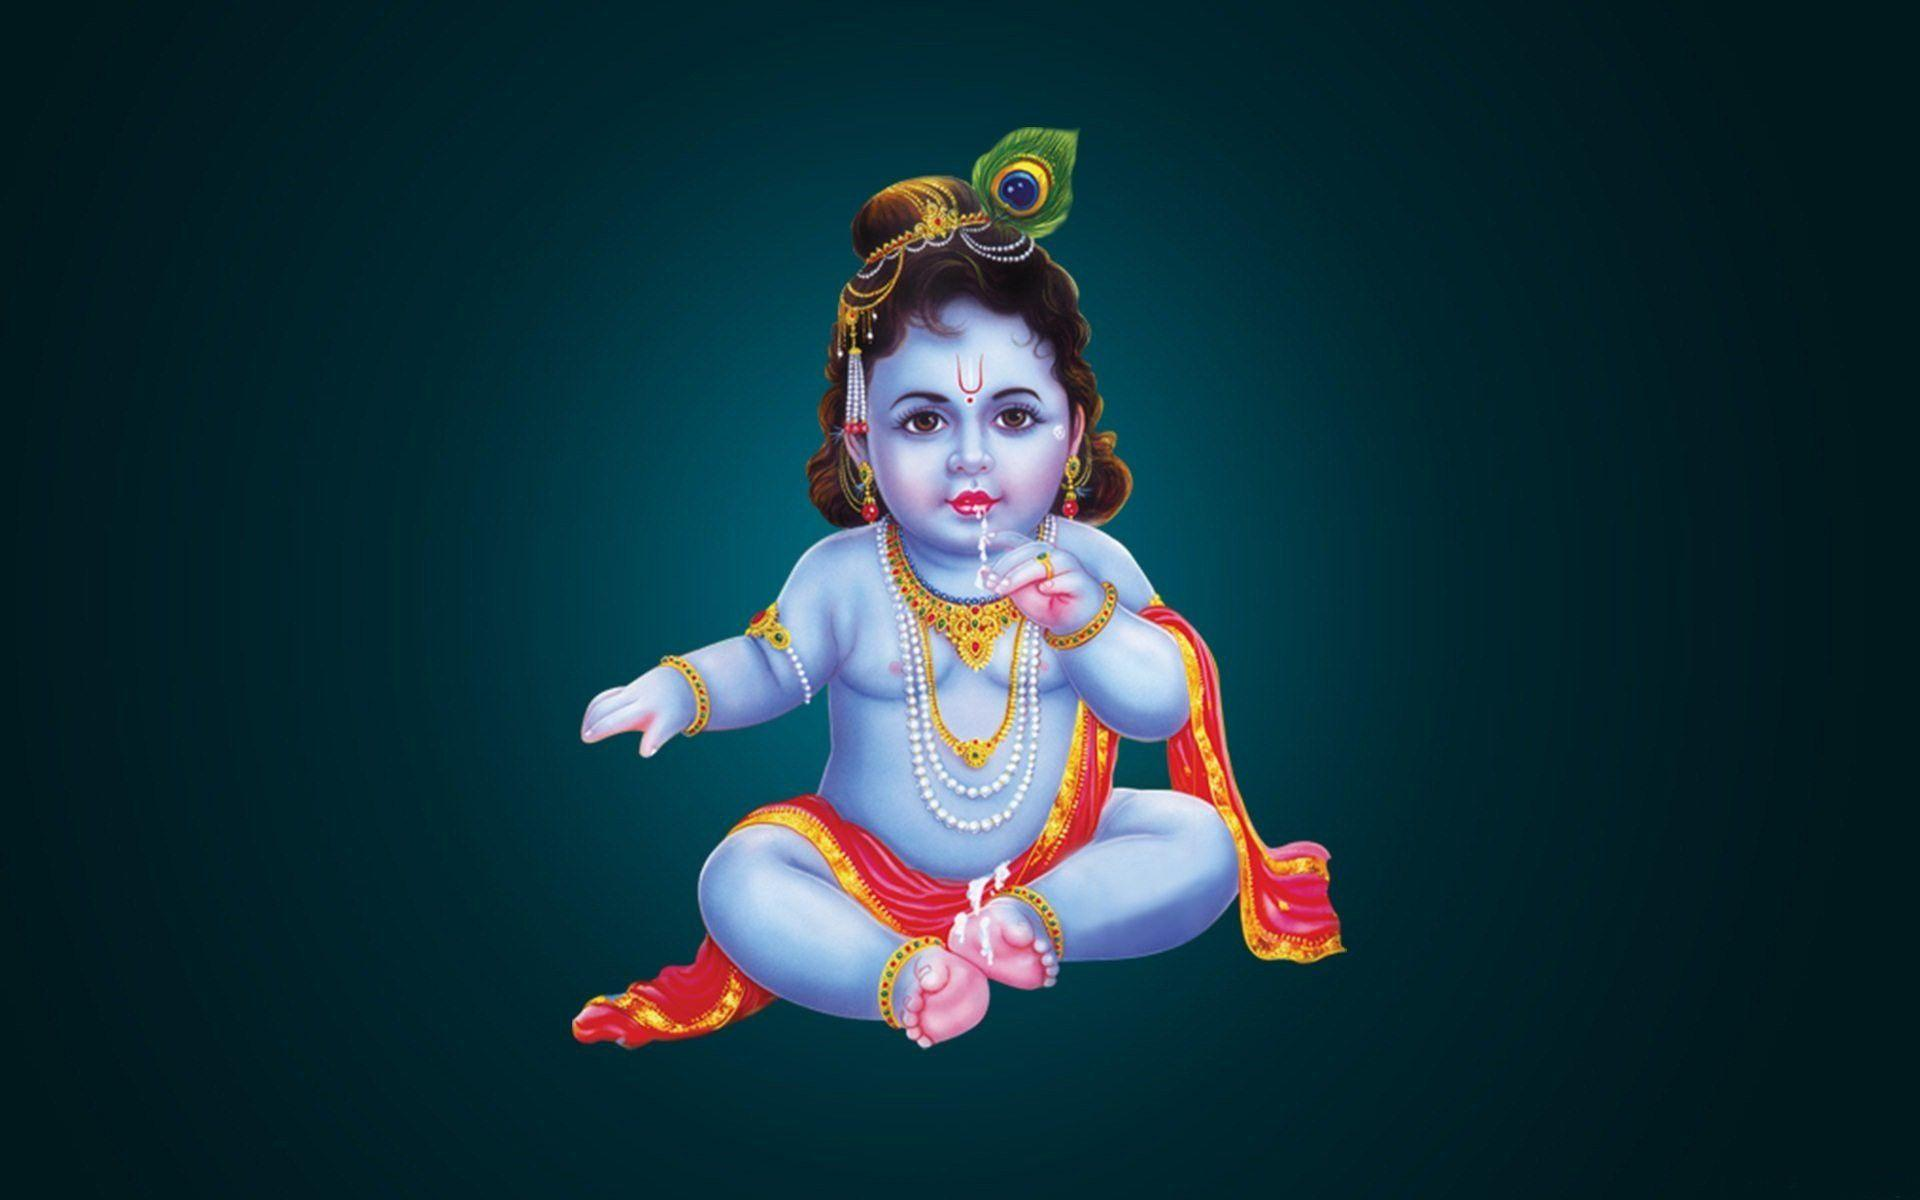 lord krishna wallpapers 2016 - wallpaper cave